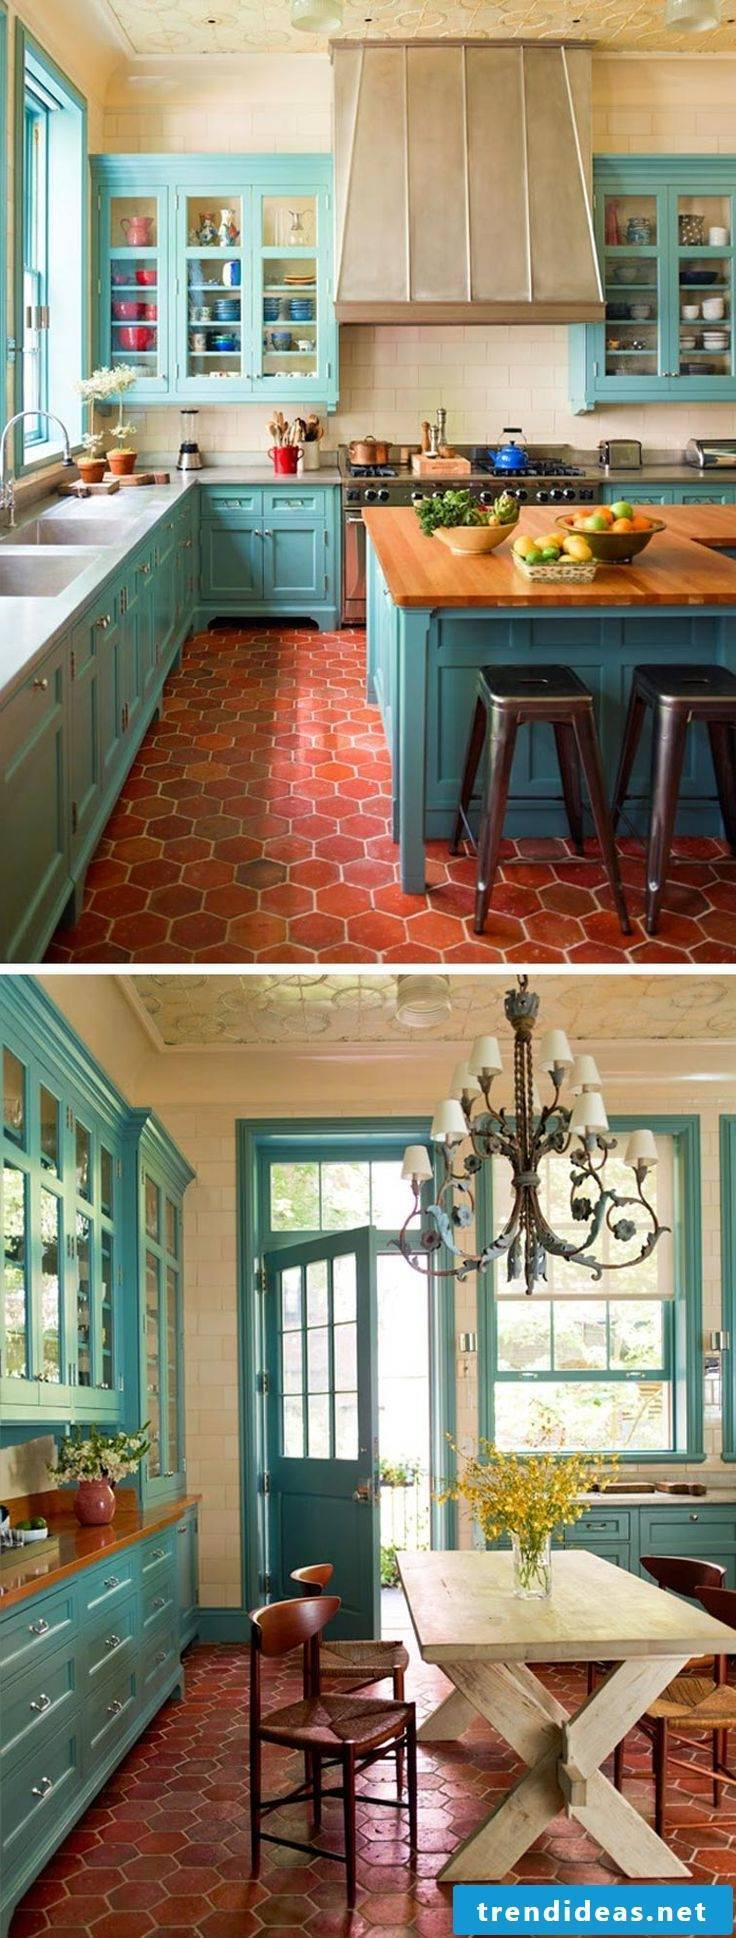 Mediterranean country kitchen - great combination of colors